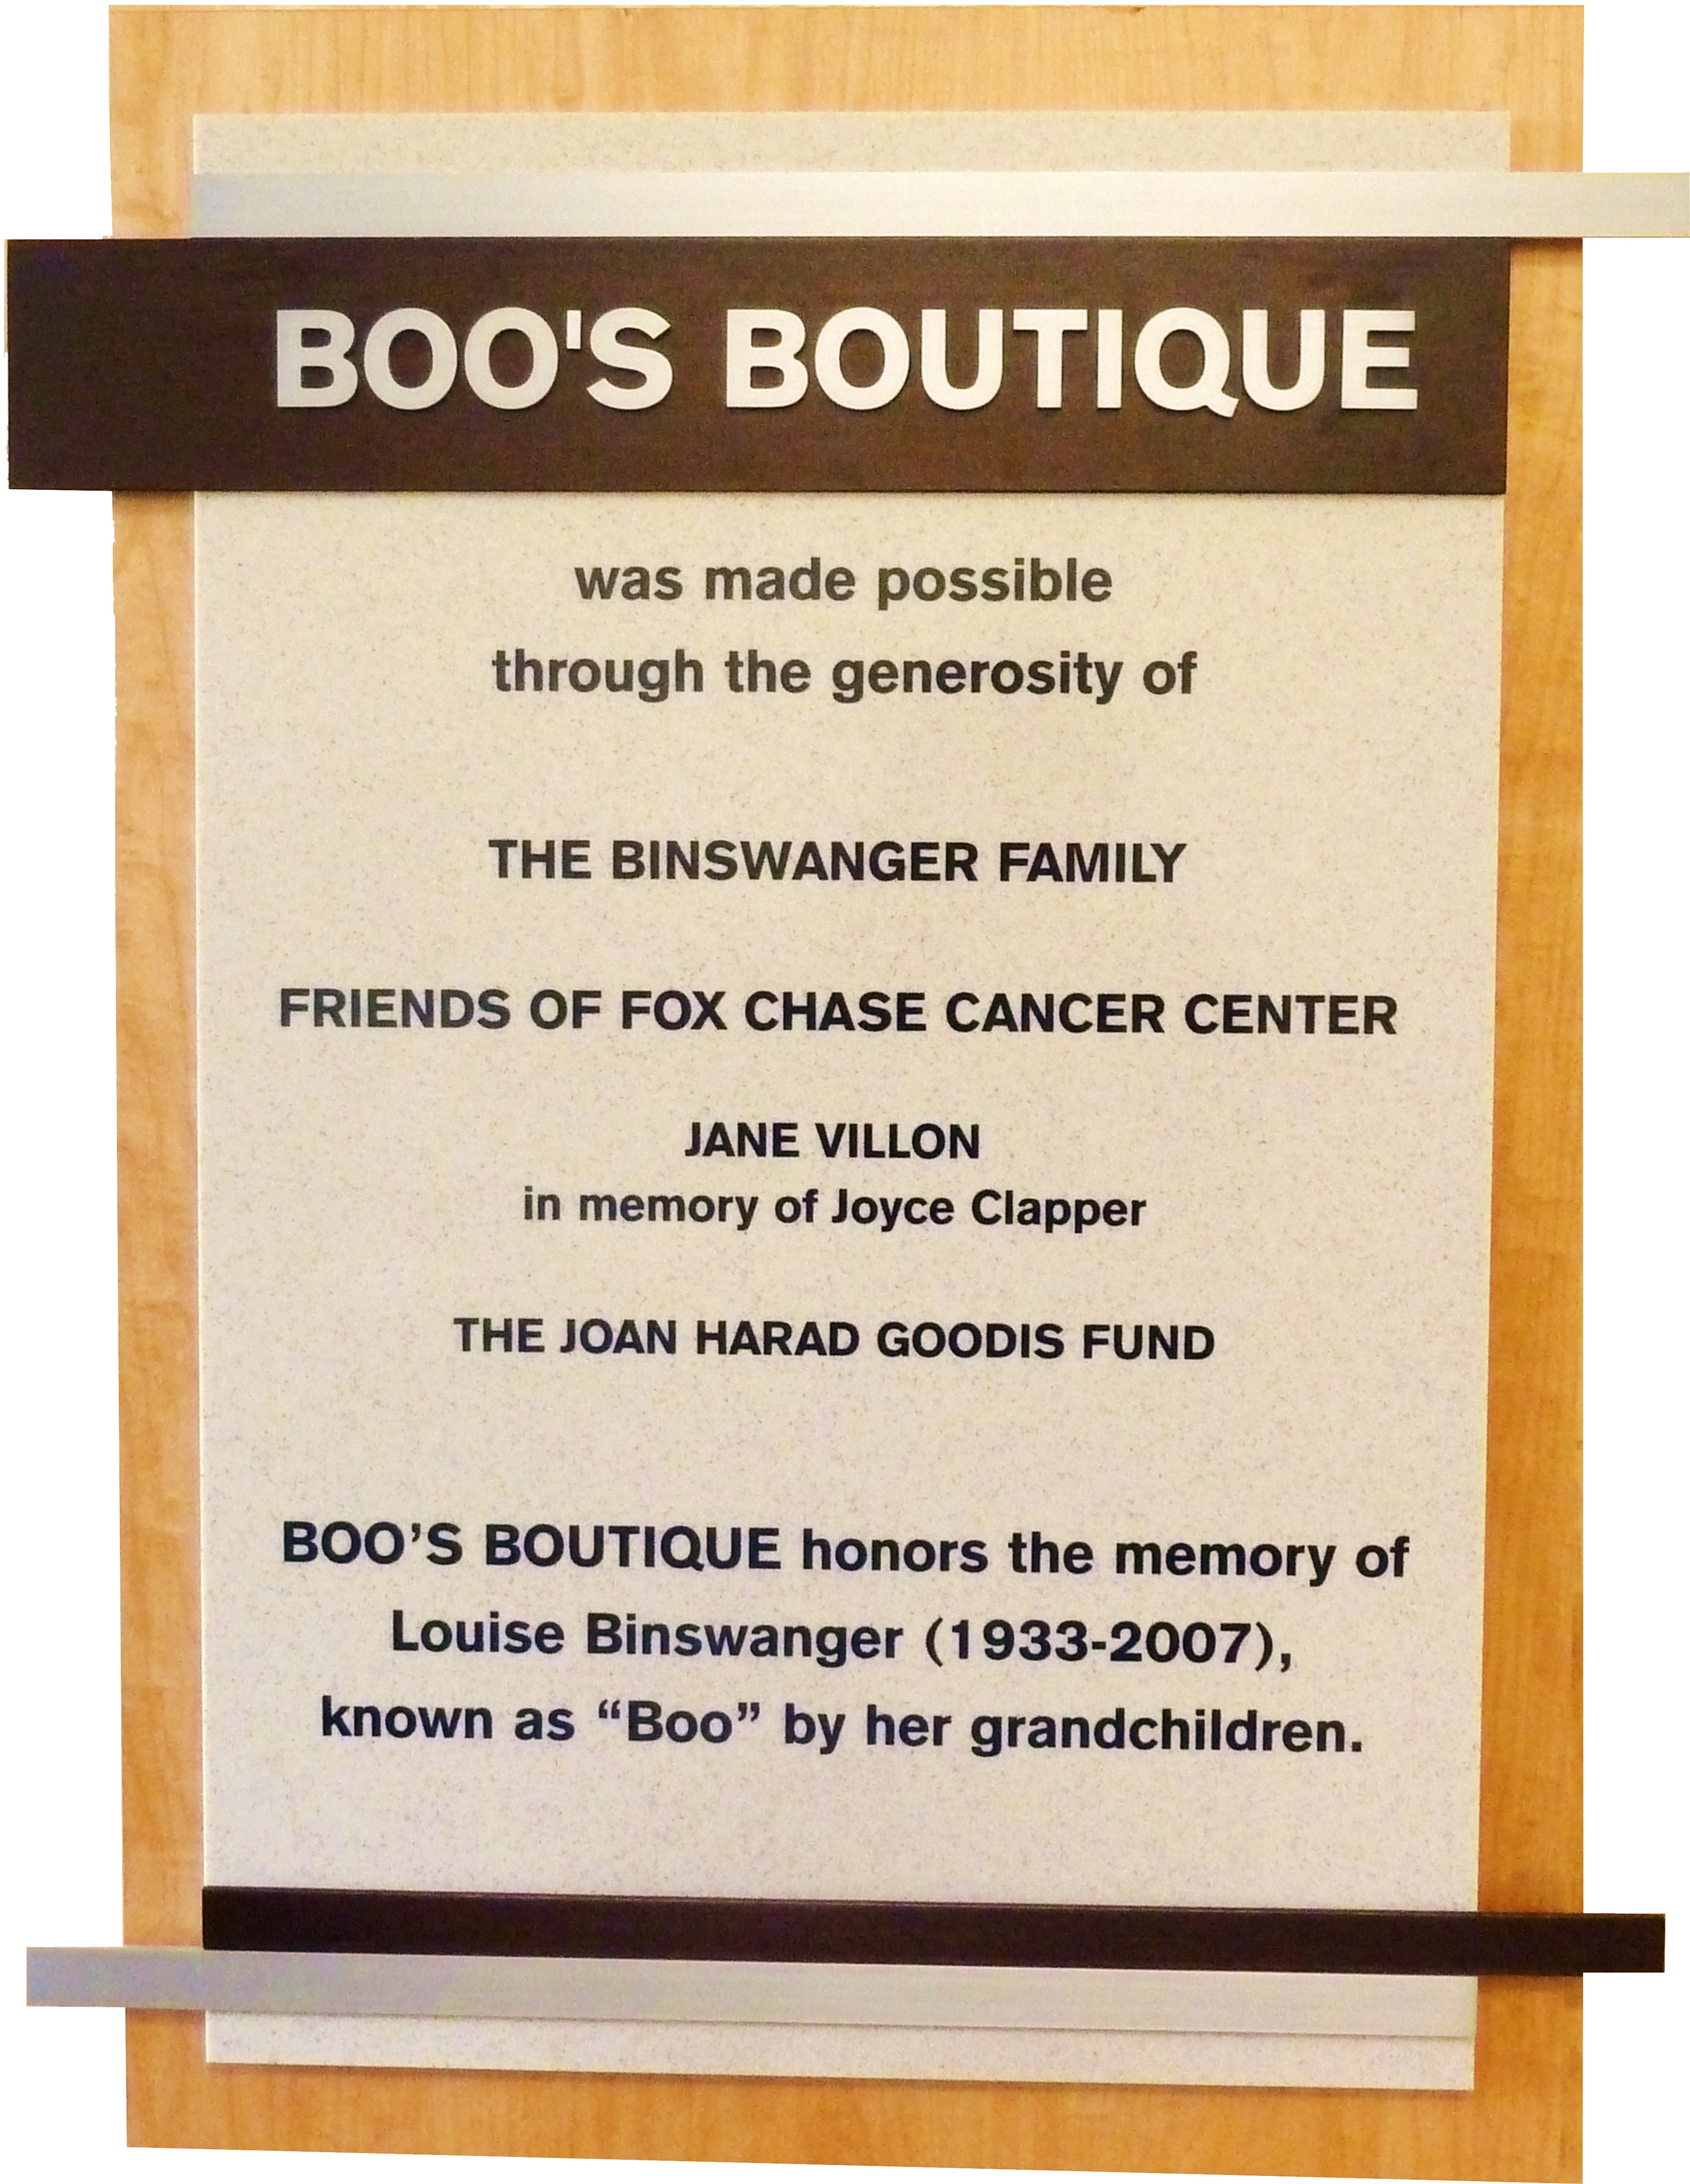 Boo's Boutique - Fox Chase Cancer Center